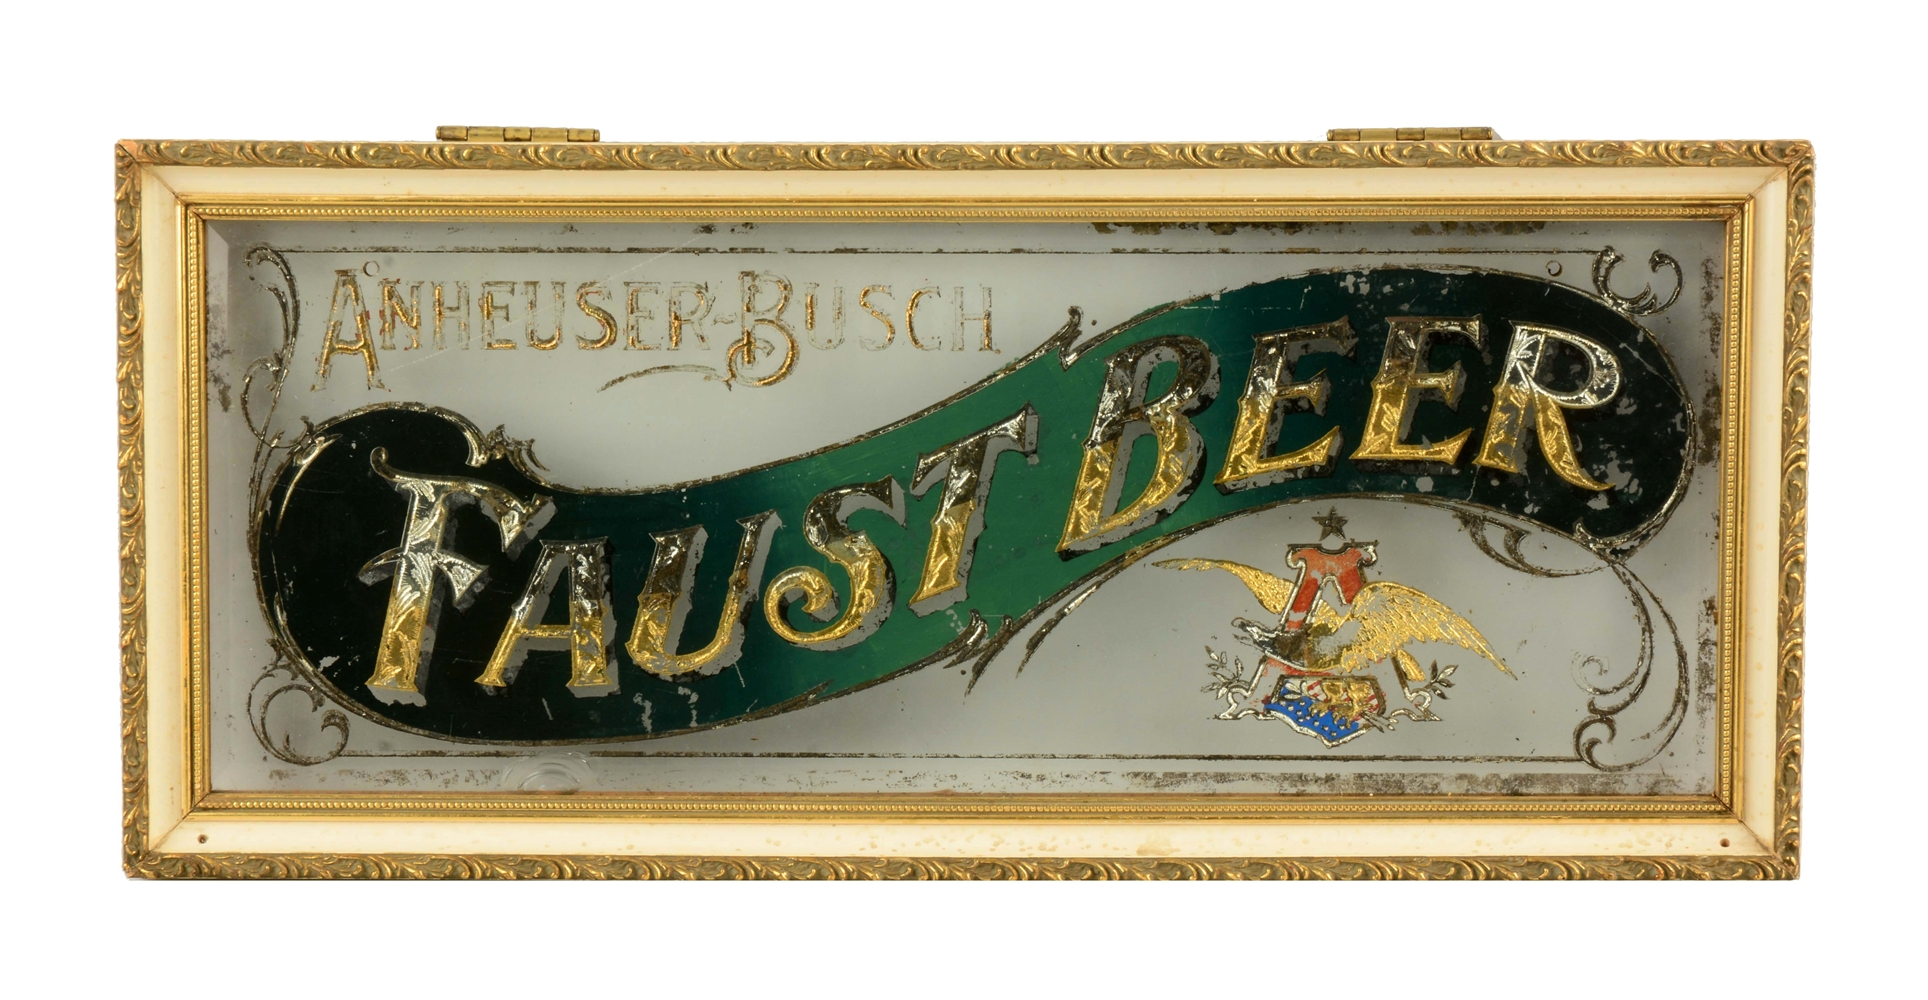 Anheuser-Busch Faust Beer Reverse Glass Sign.